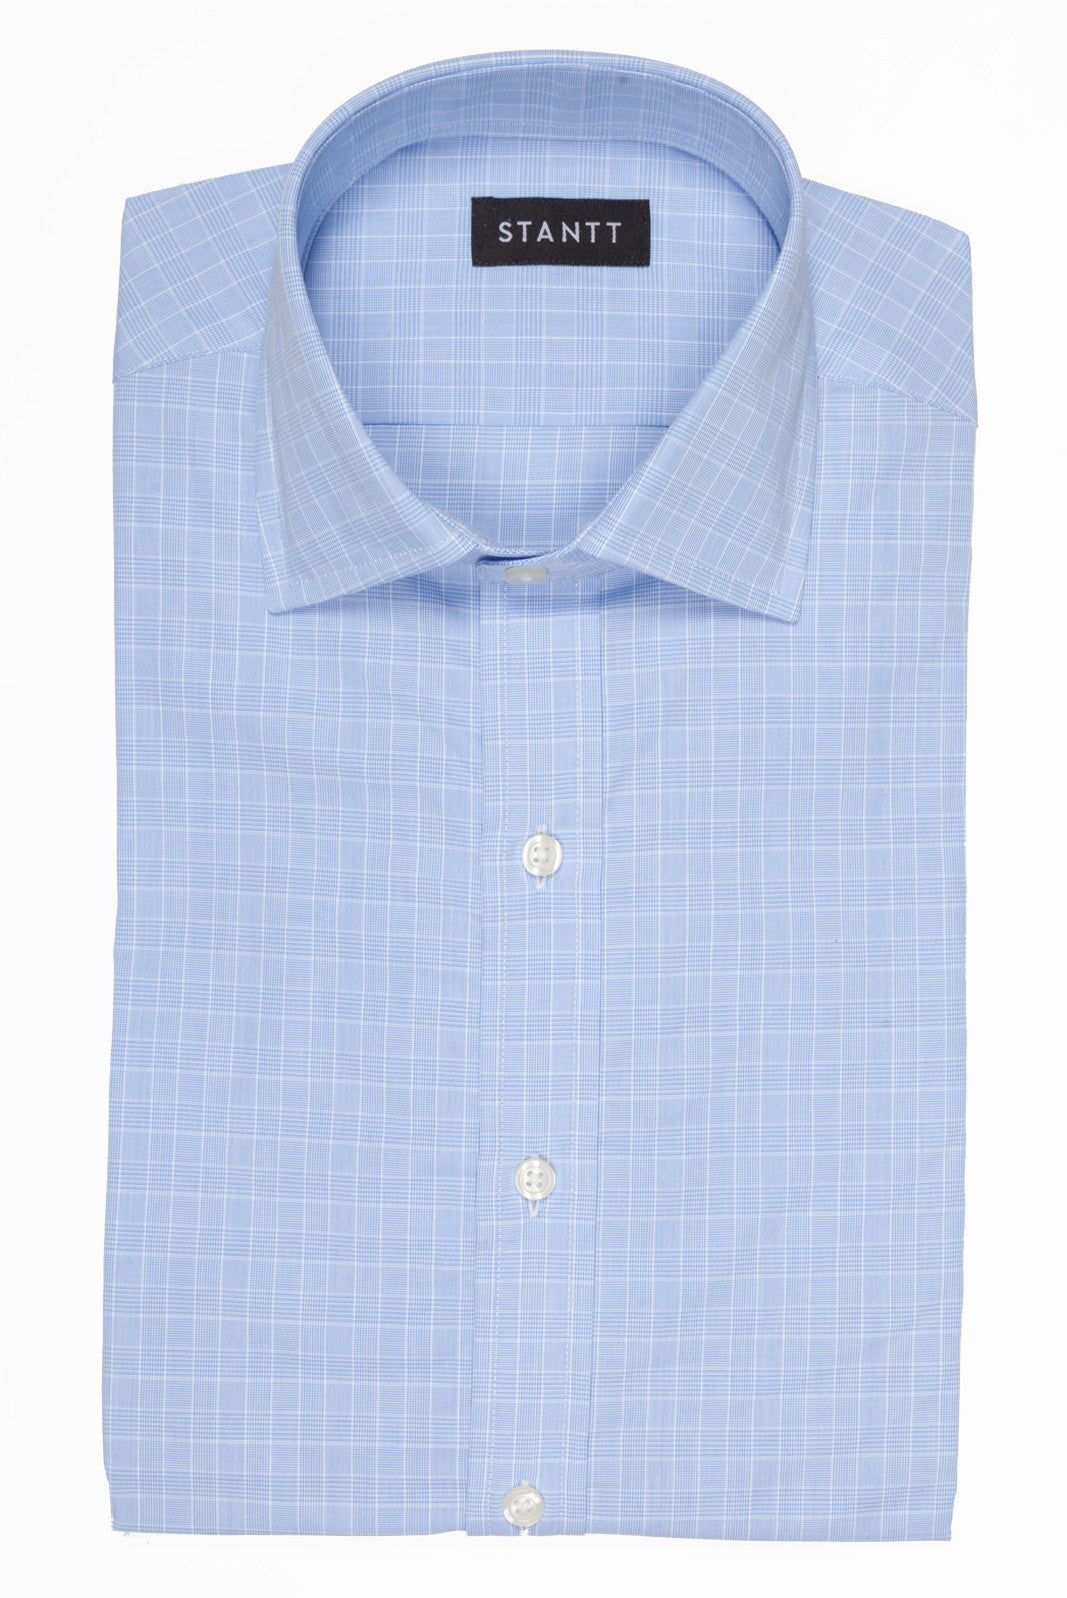 Light Blue Mini Prince of Wales Check: Modified-Spread Collar, French Cuff